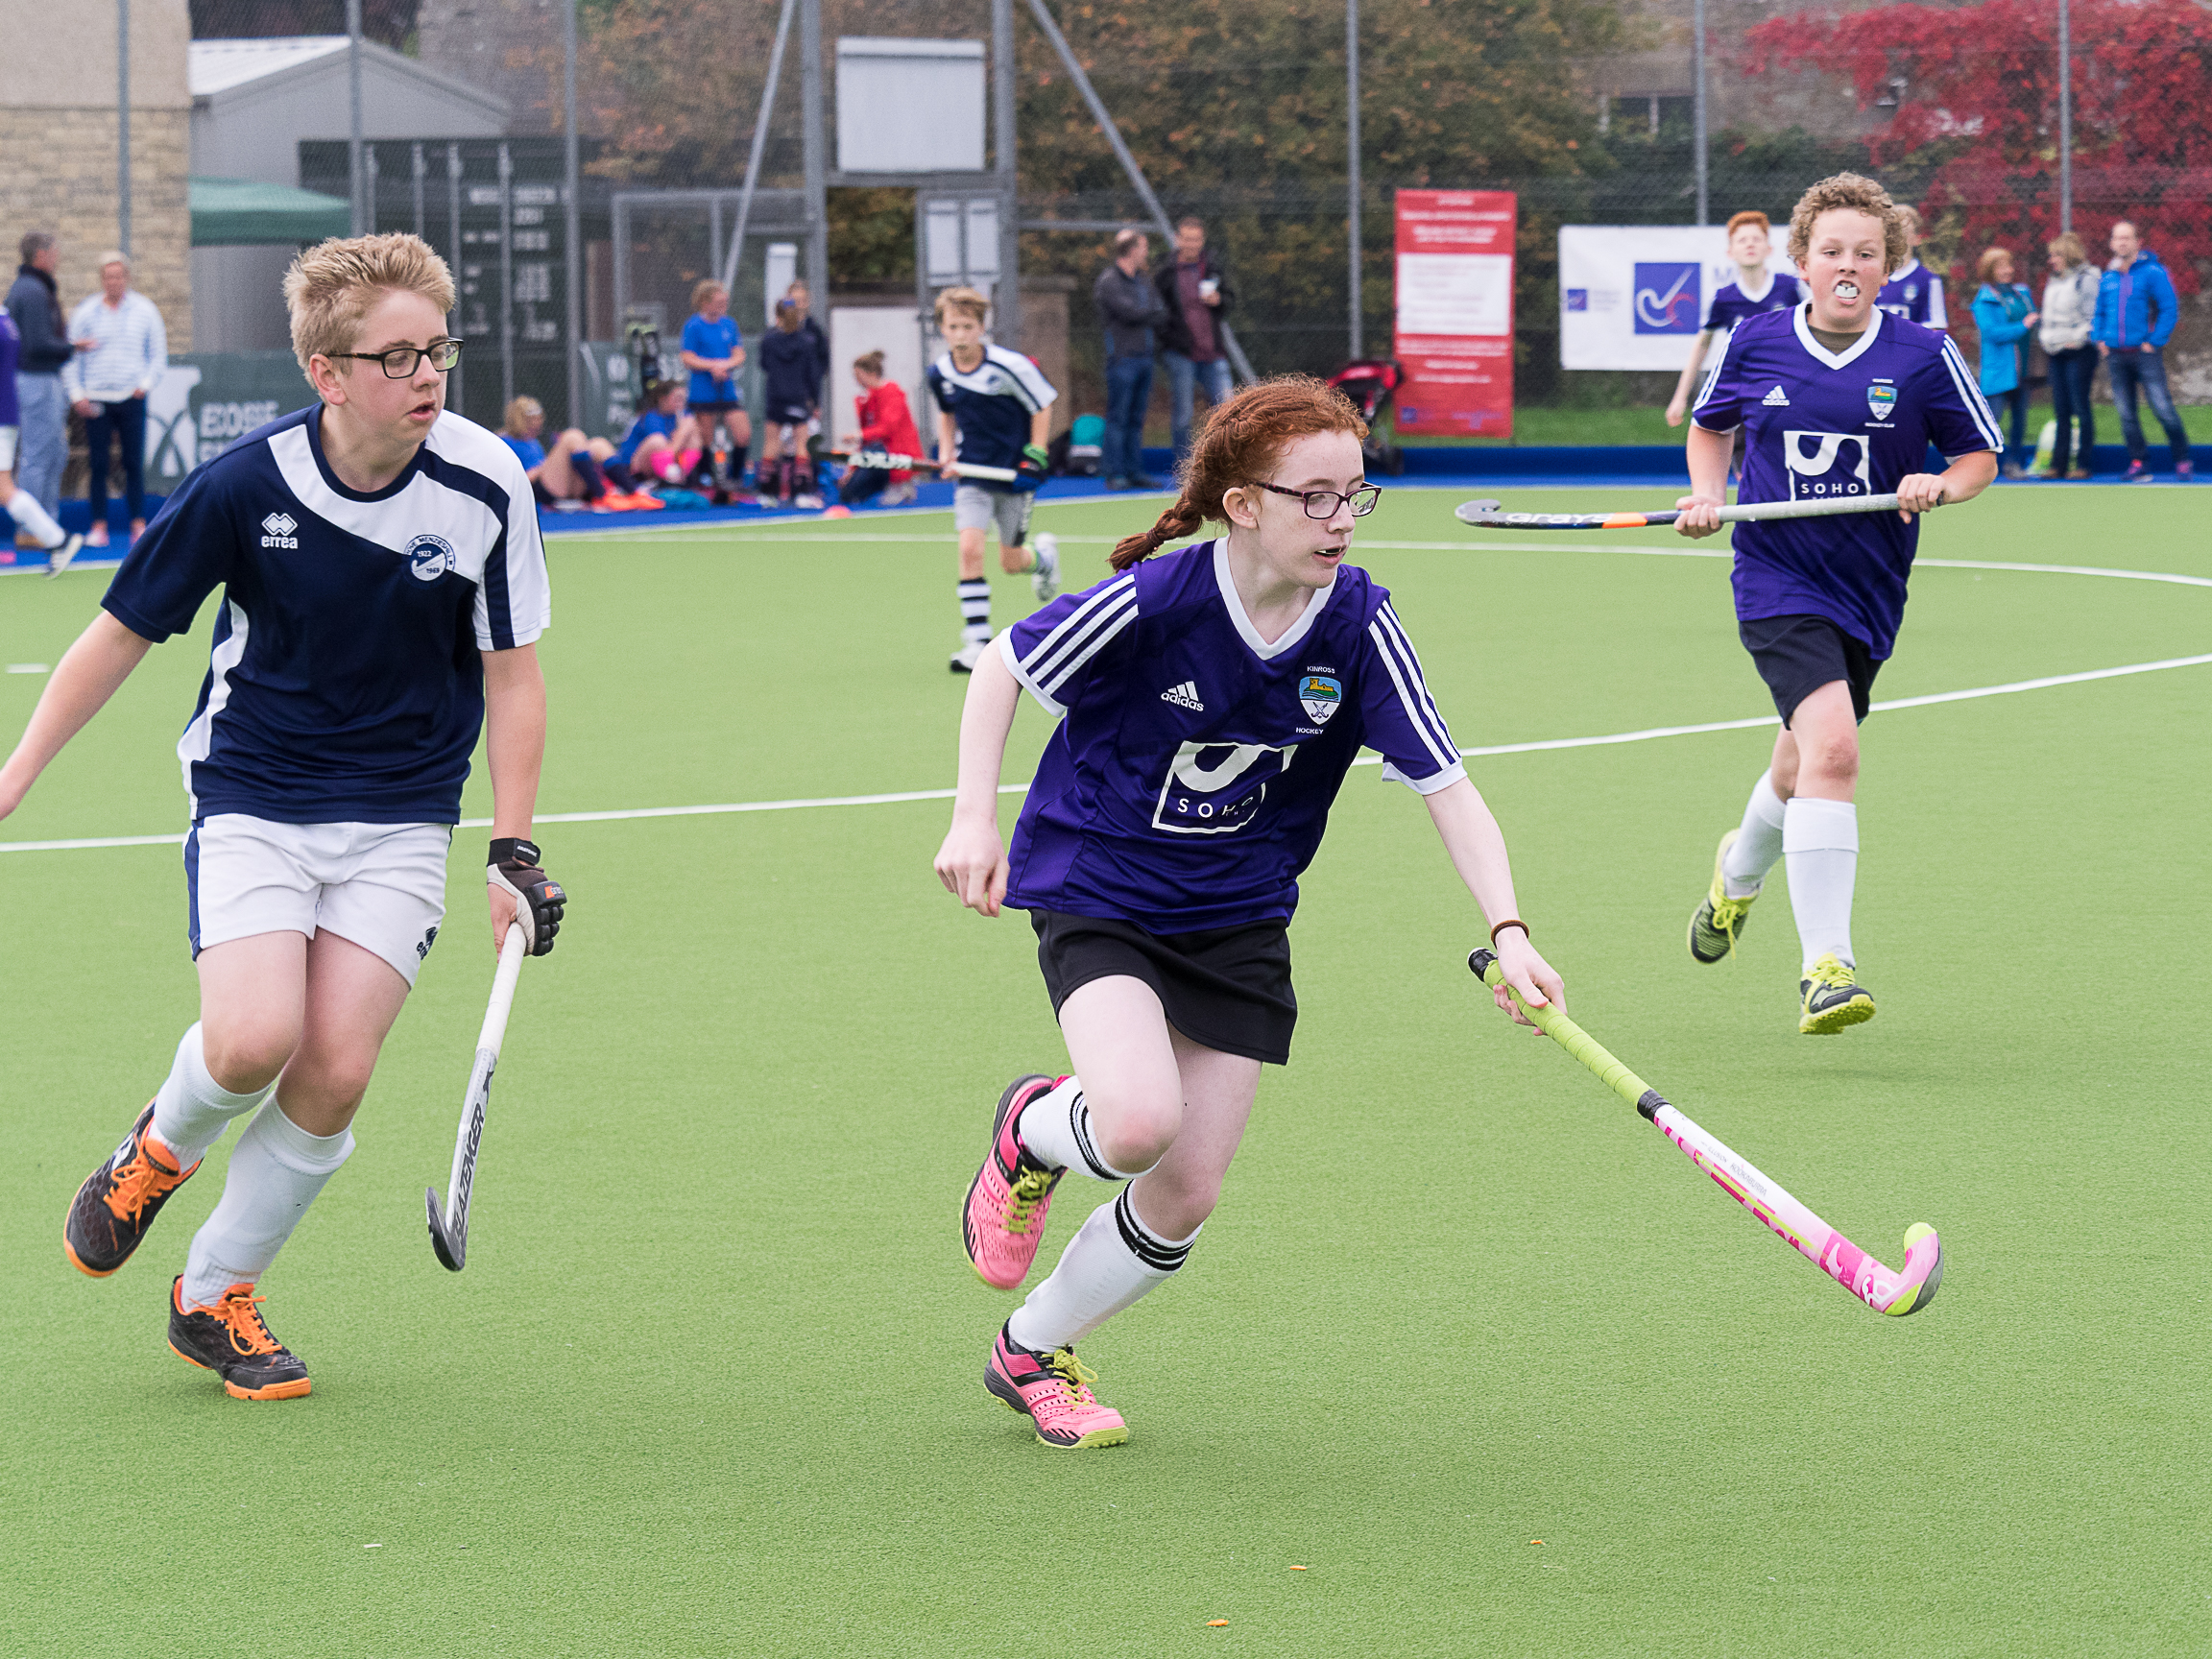 Hockey Kinross Sept 24th-78.jpg